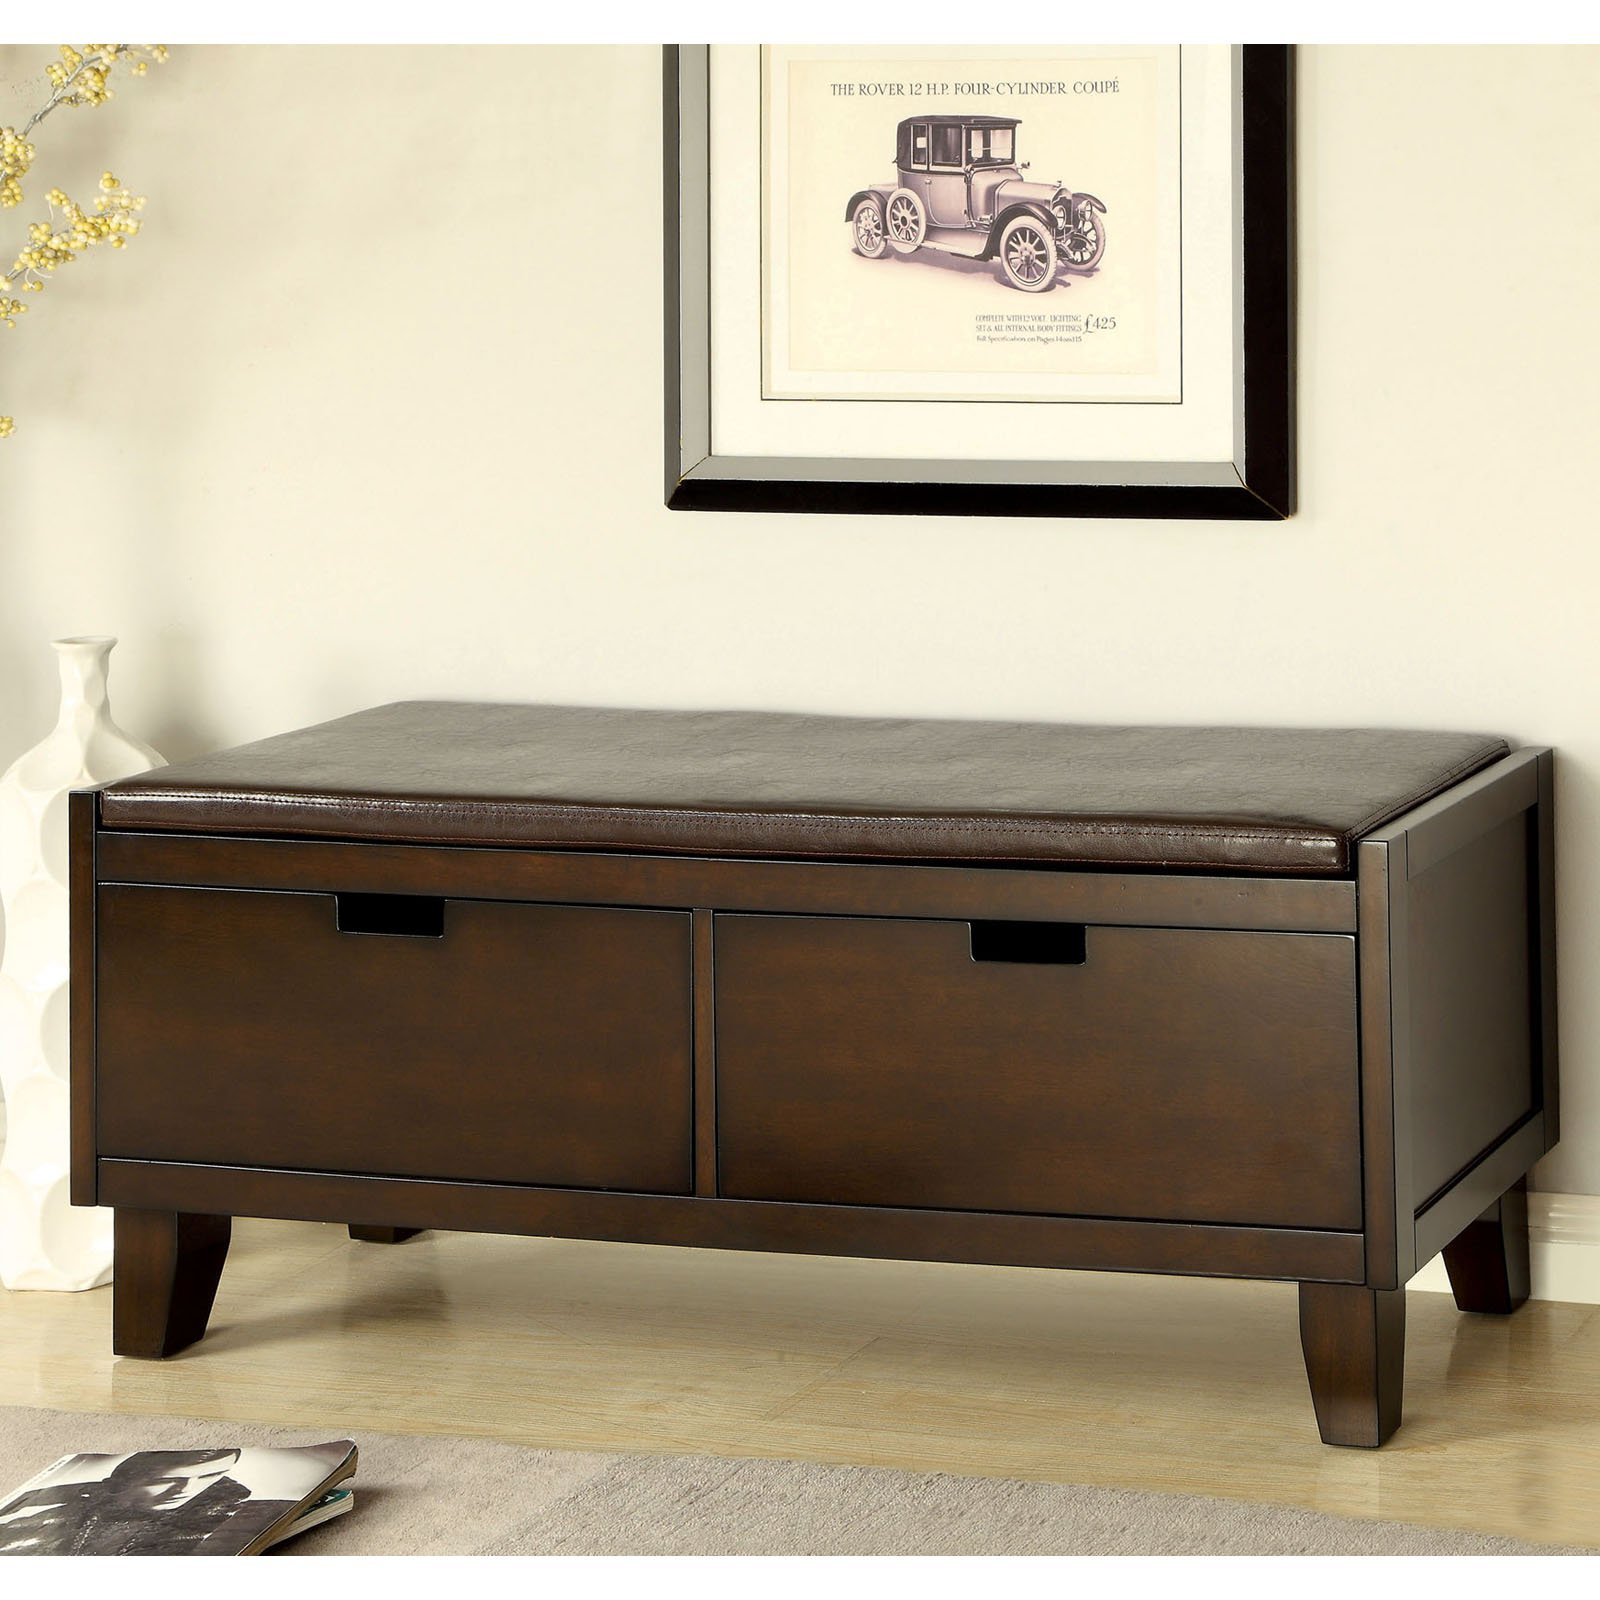 Furniture Of America Revelle Padded Leatherette Storage Bench   Walnut    Walmart.com